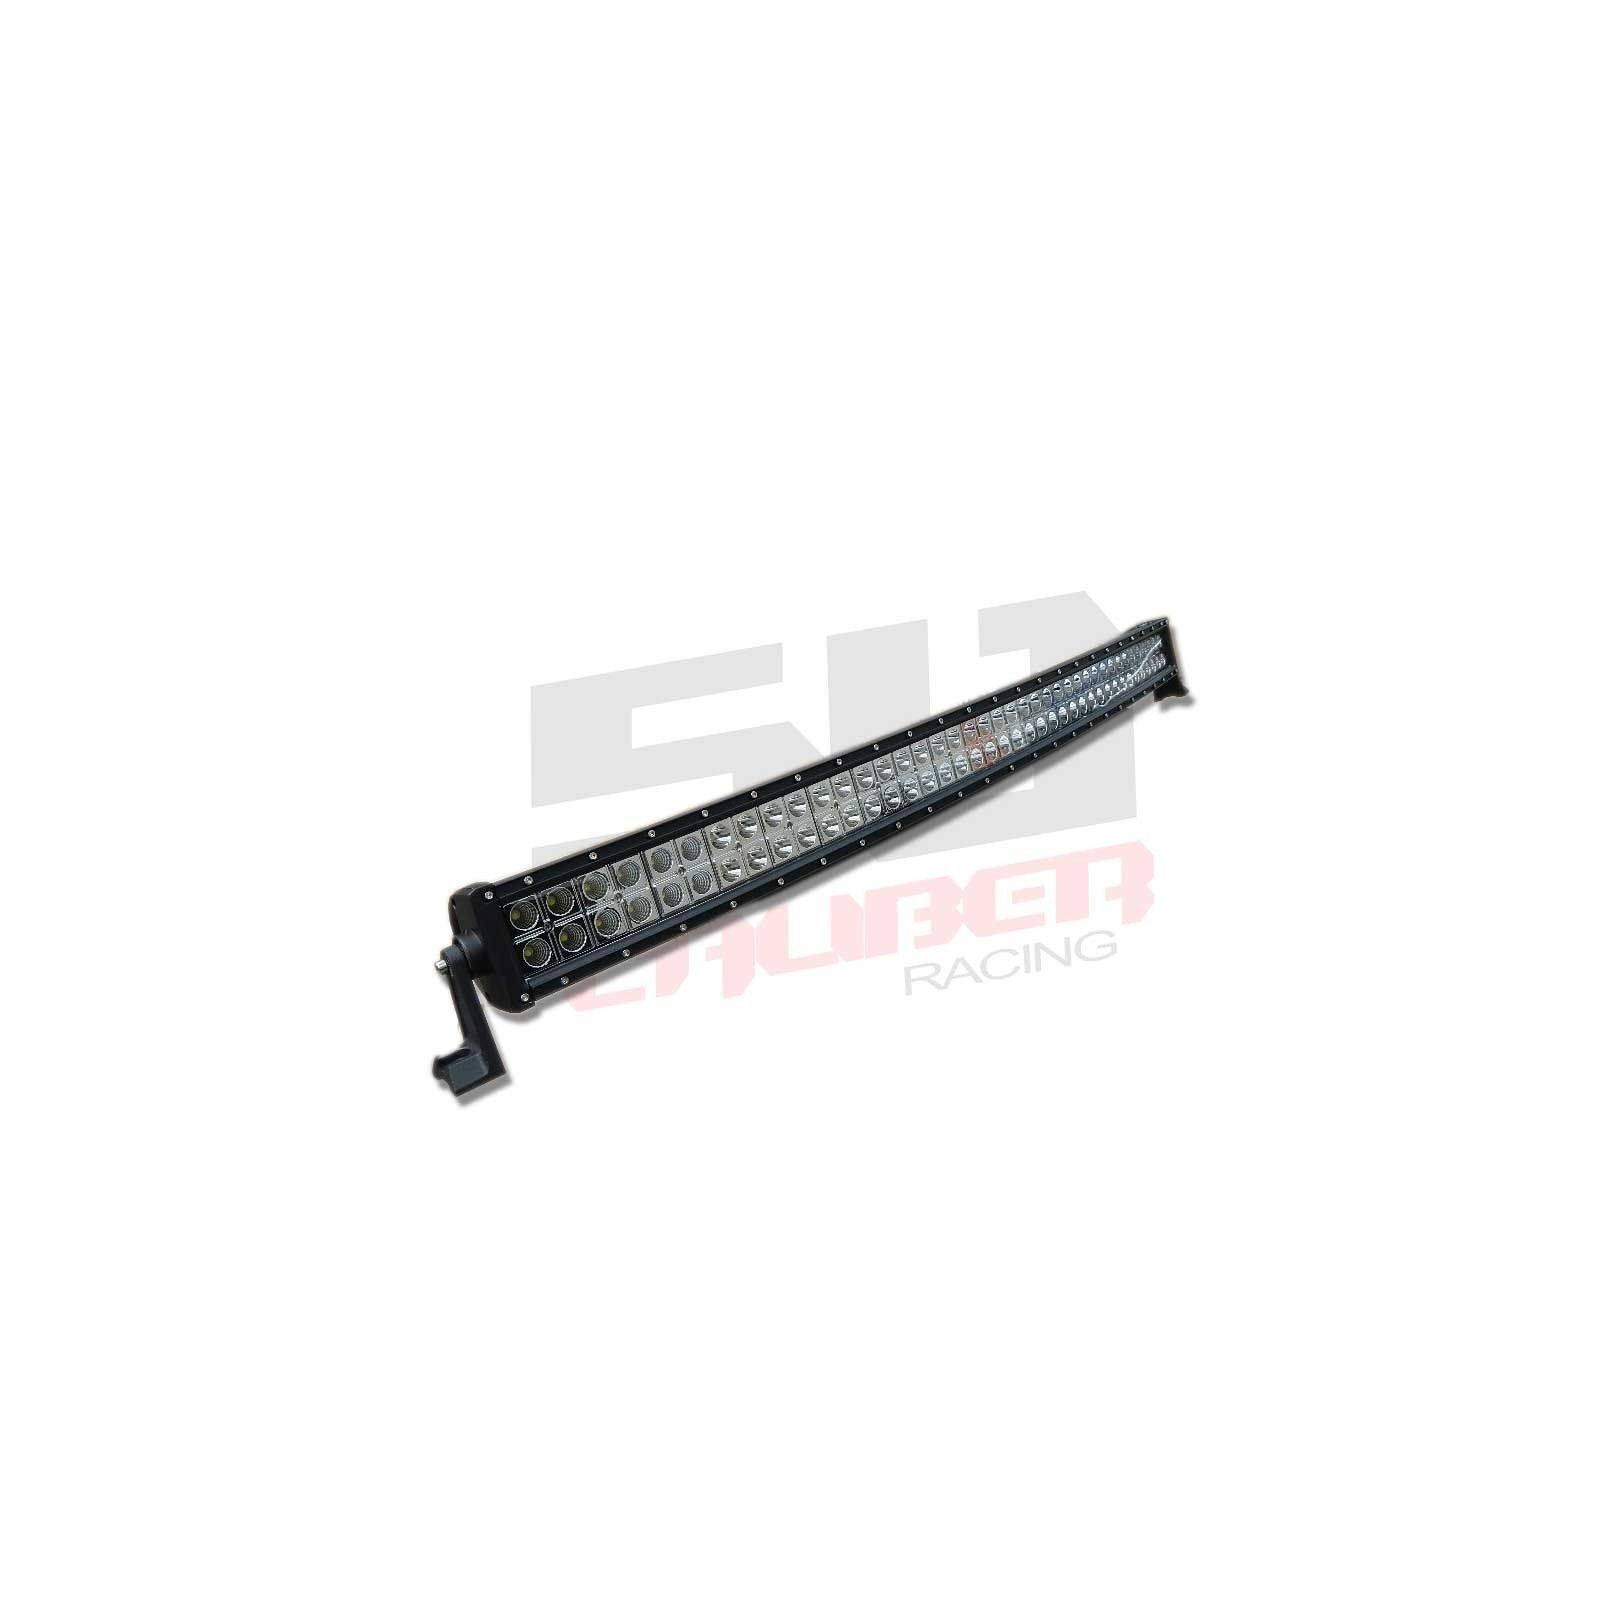 50 Inch Curved Led Light Bar